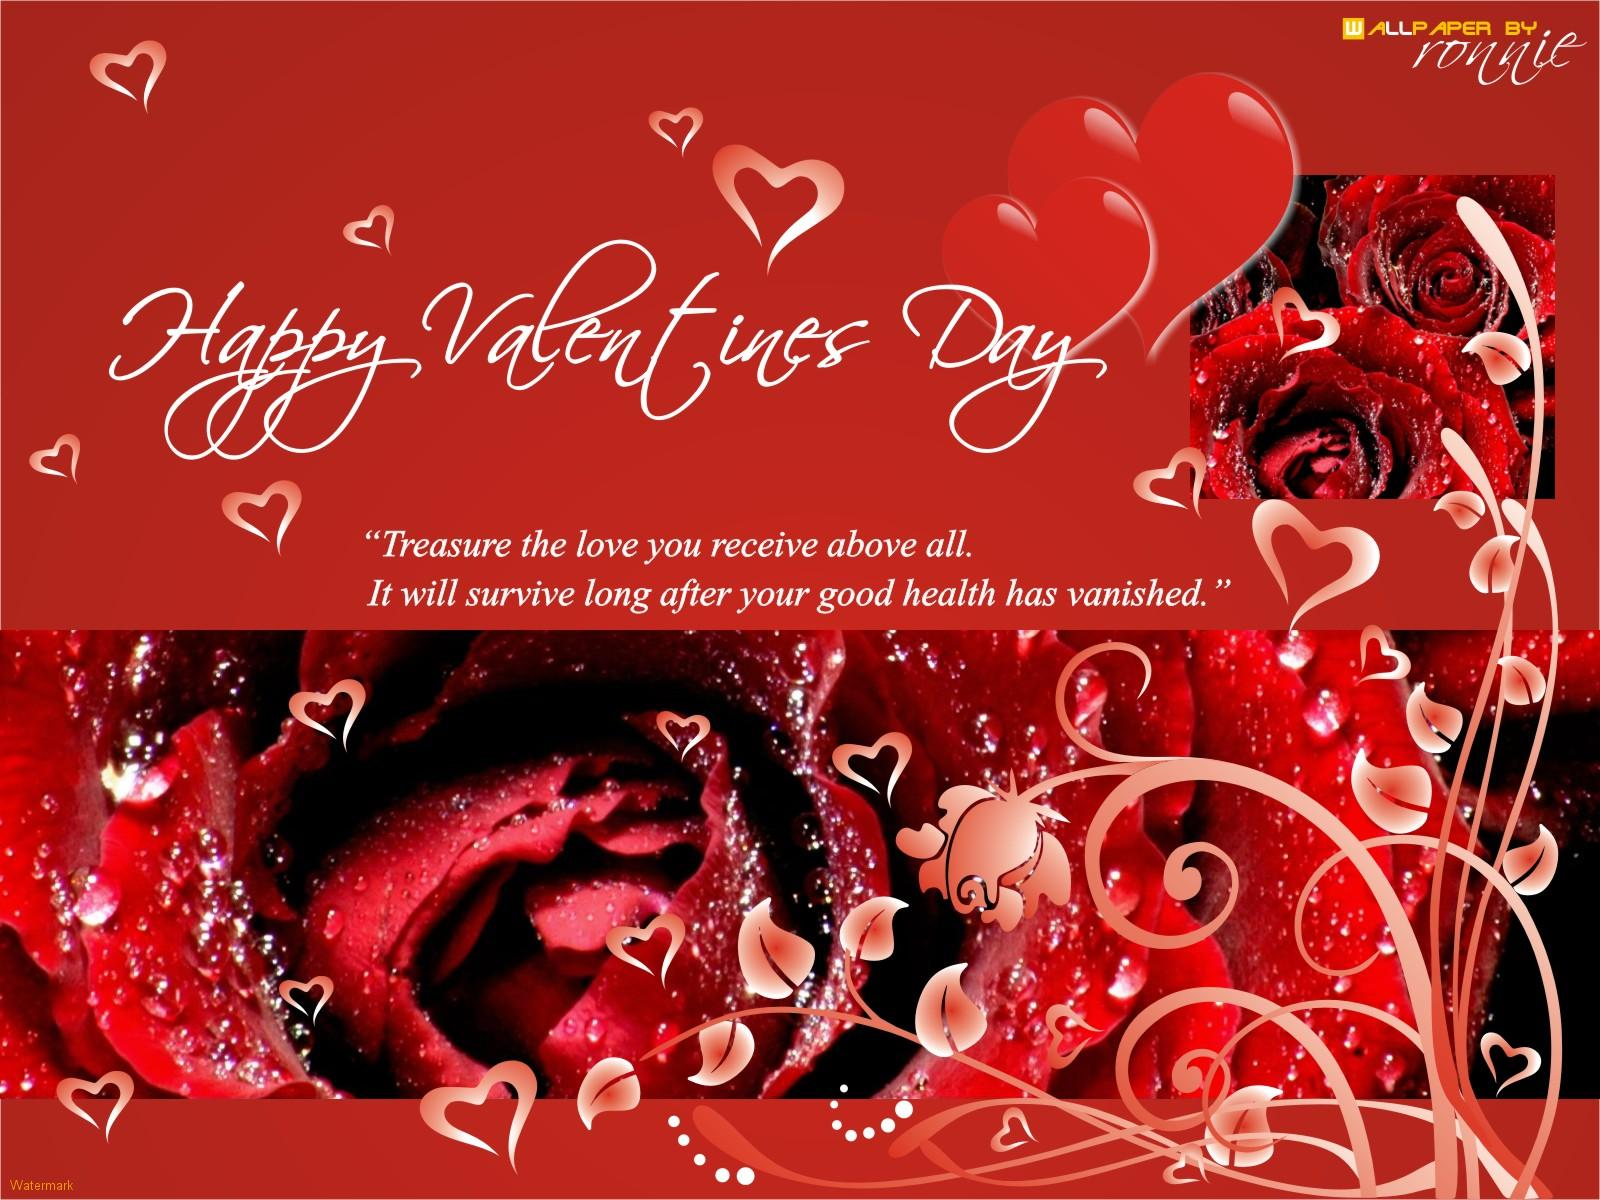 Popular   Wallpaper Horse Valentines Day - Free-Happy-Valentines-Day-Wallpapers  Pictures_734377.jpg